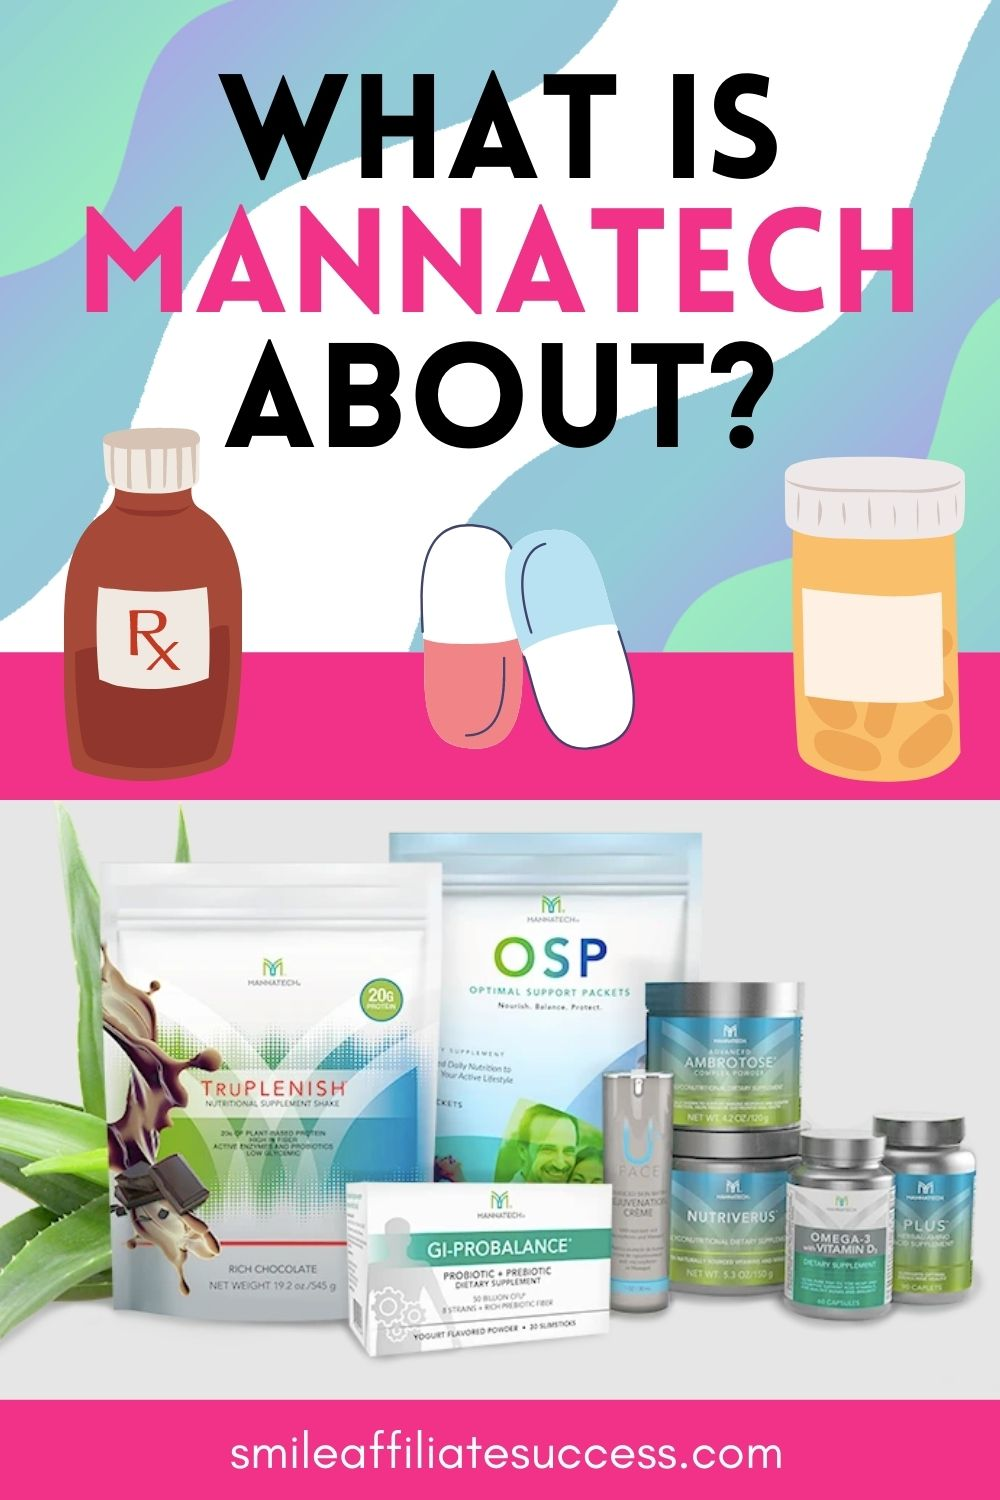 What Is Mannatech About?